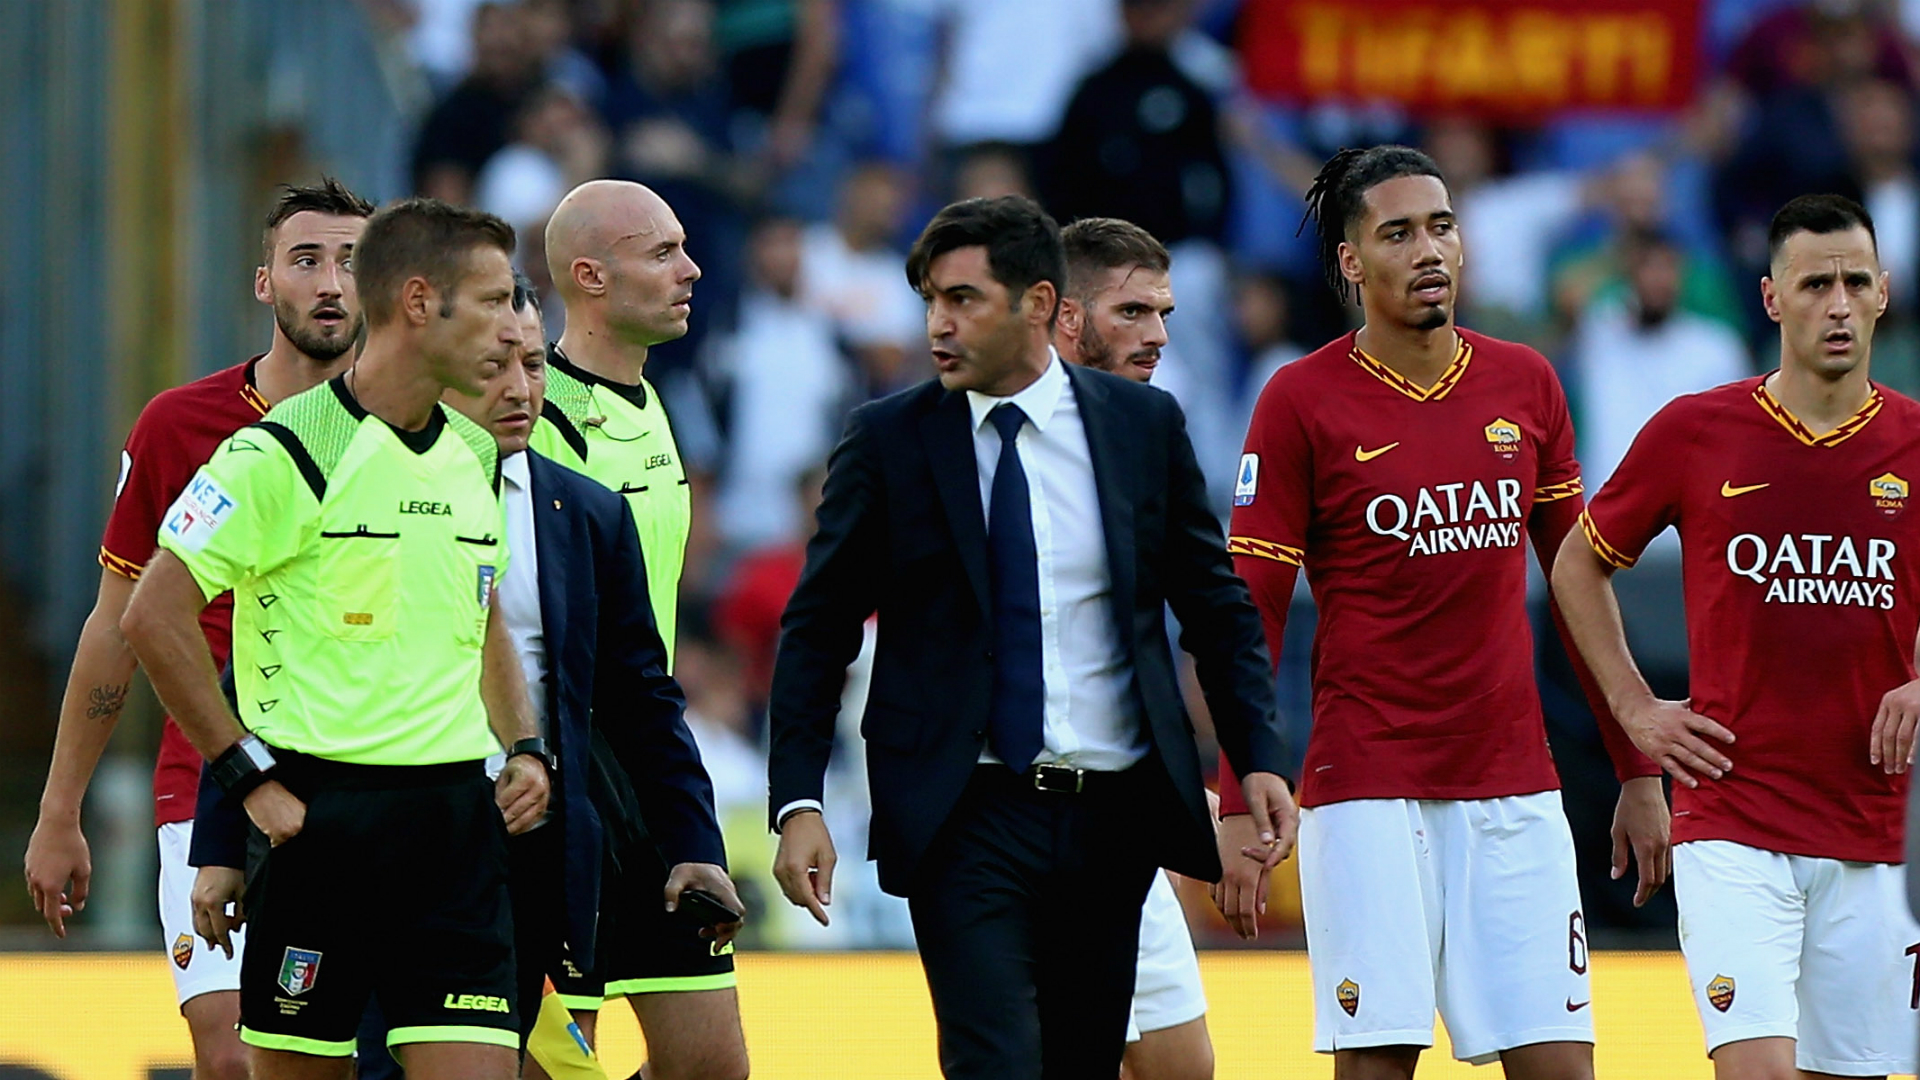 Paulo Fonseca, who had been banned from the touchline for two matches, has seen his suspension reduced to a single game.